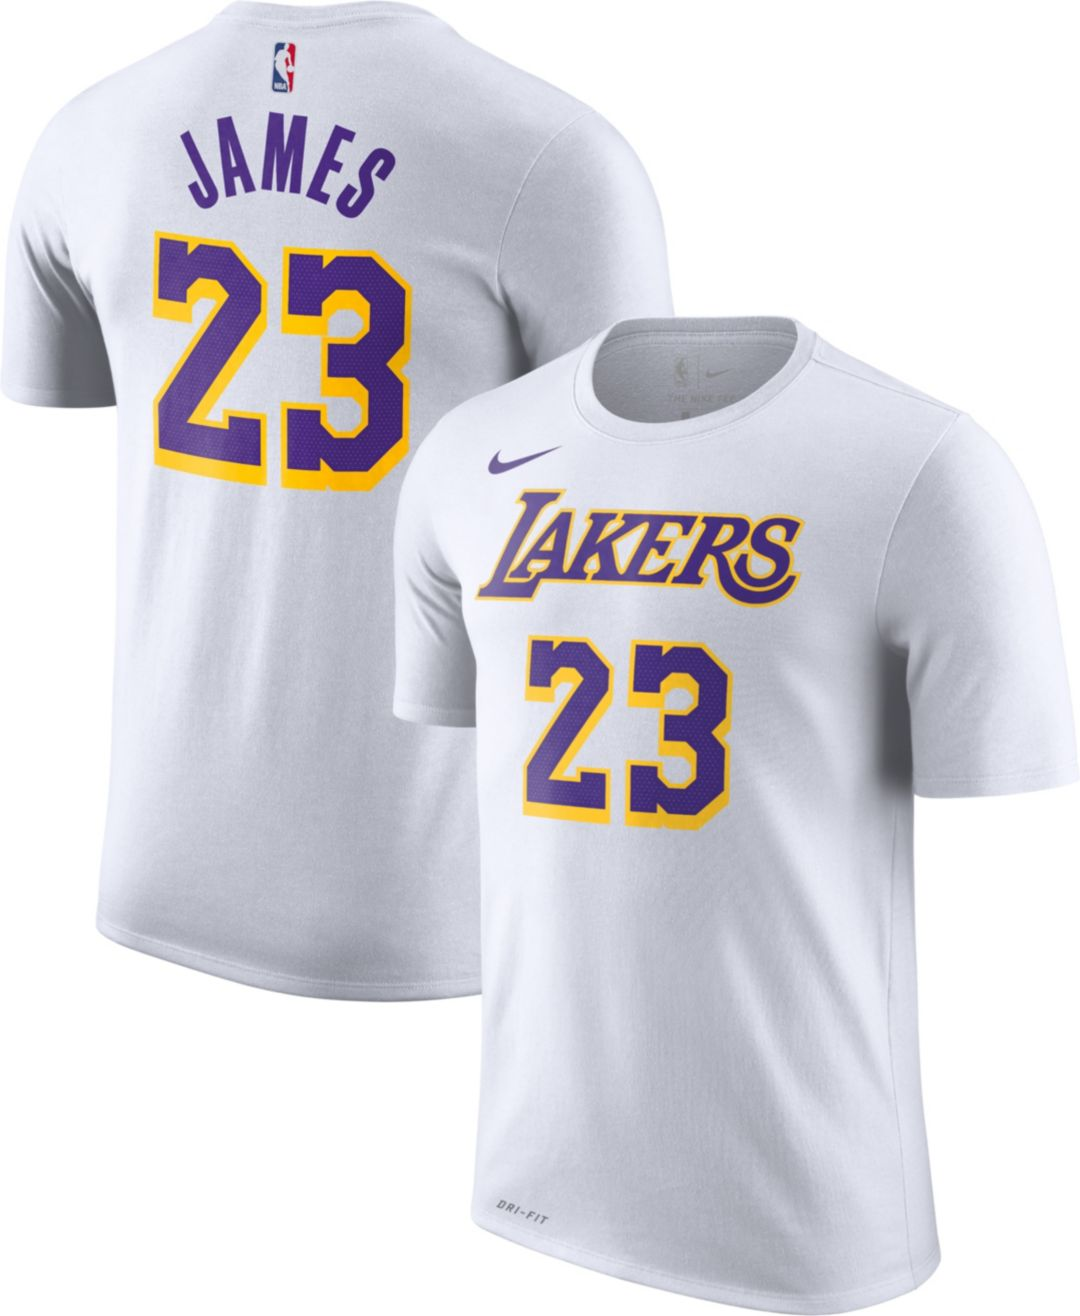 official photos 63950 48325 Nike Men's Los Angeles Lakers LeBron James Dri-FIT White T-Shirt